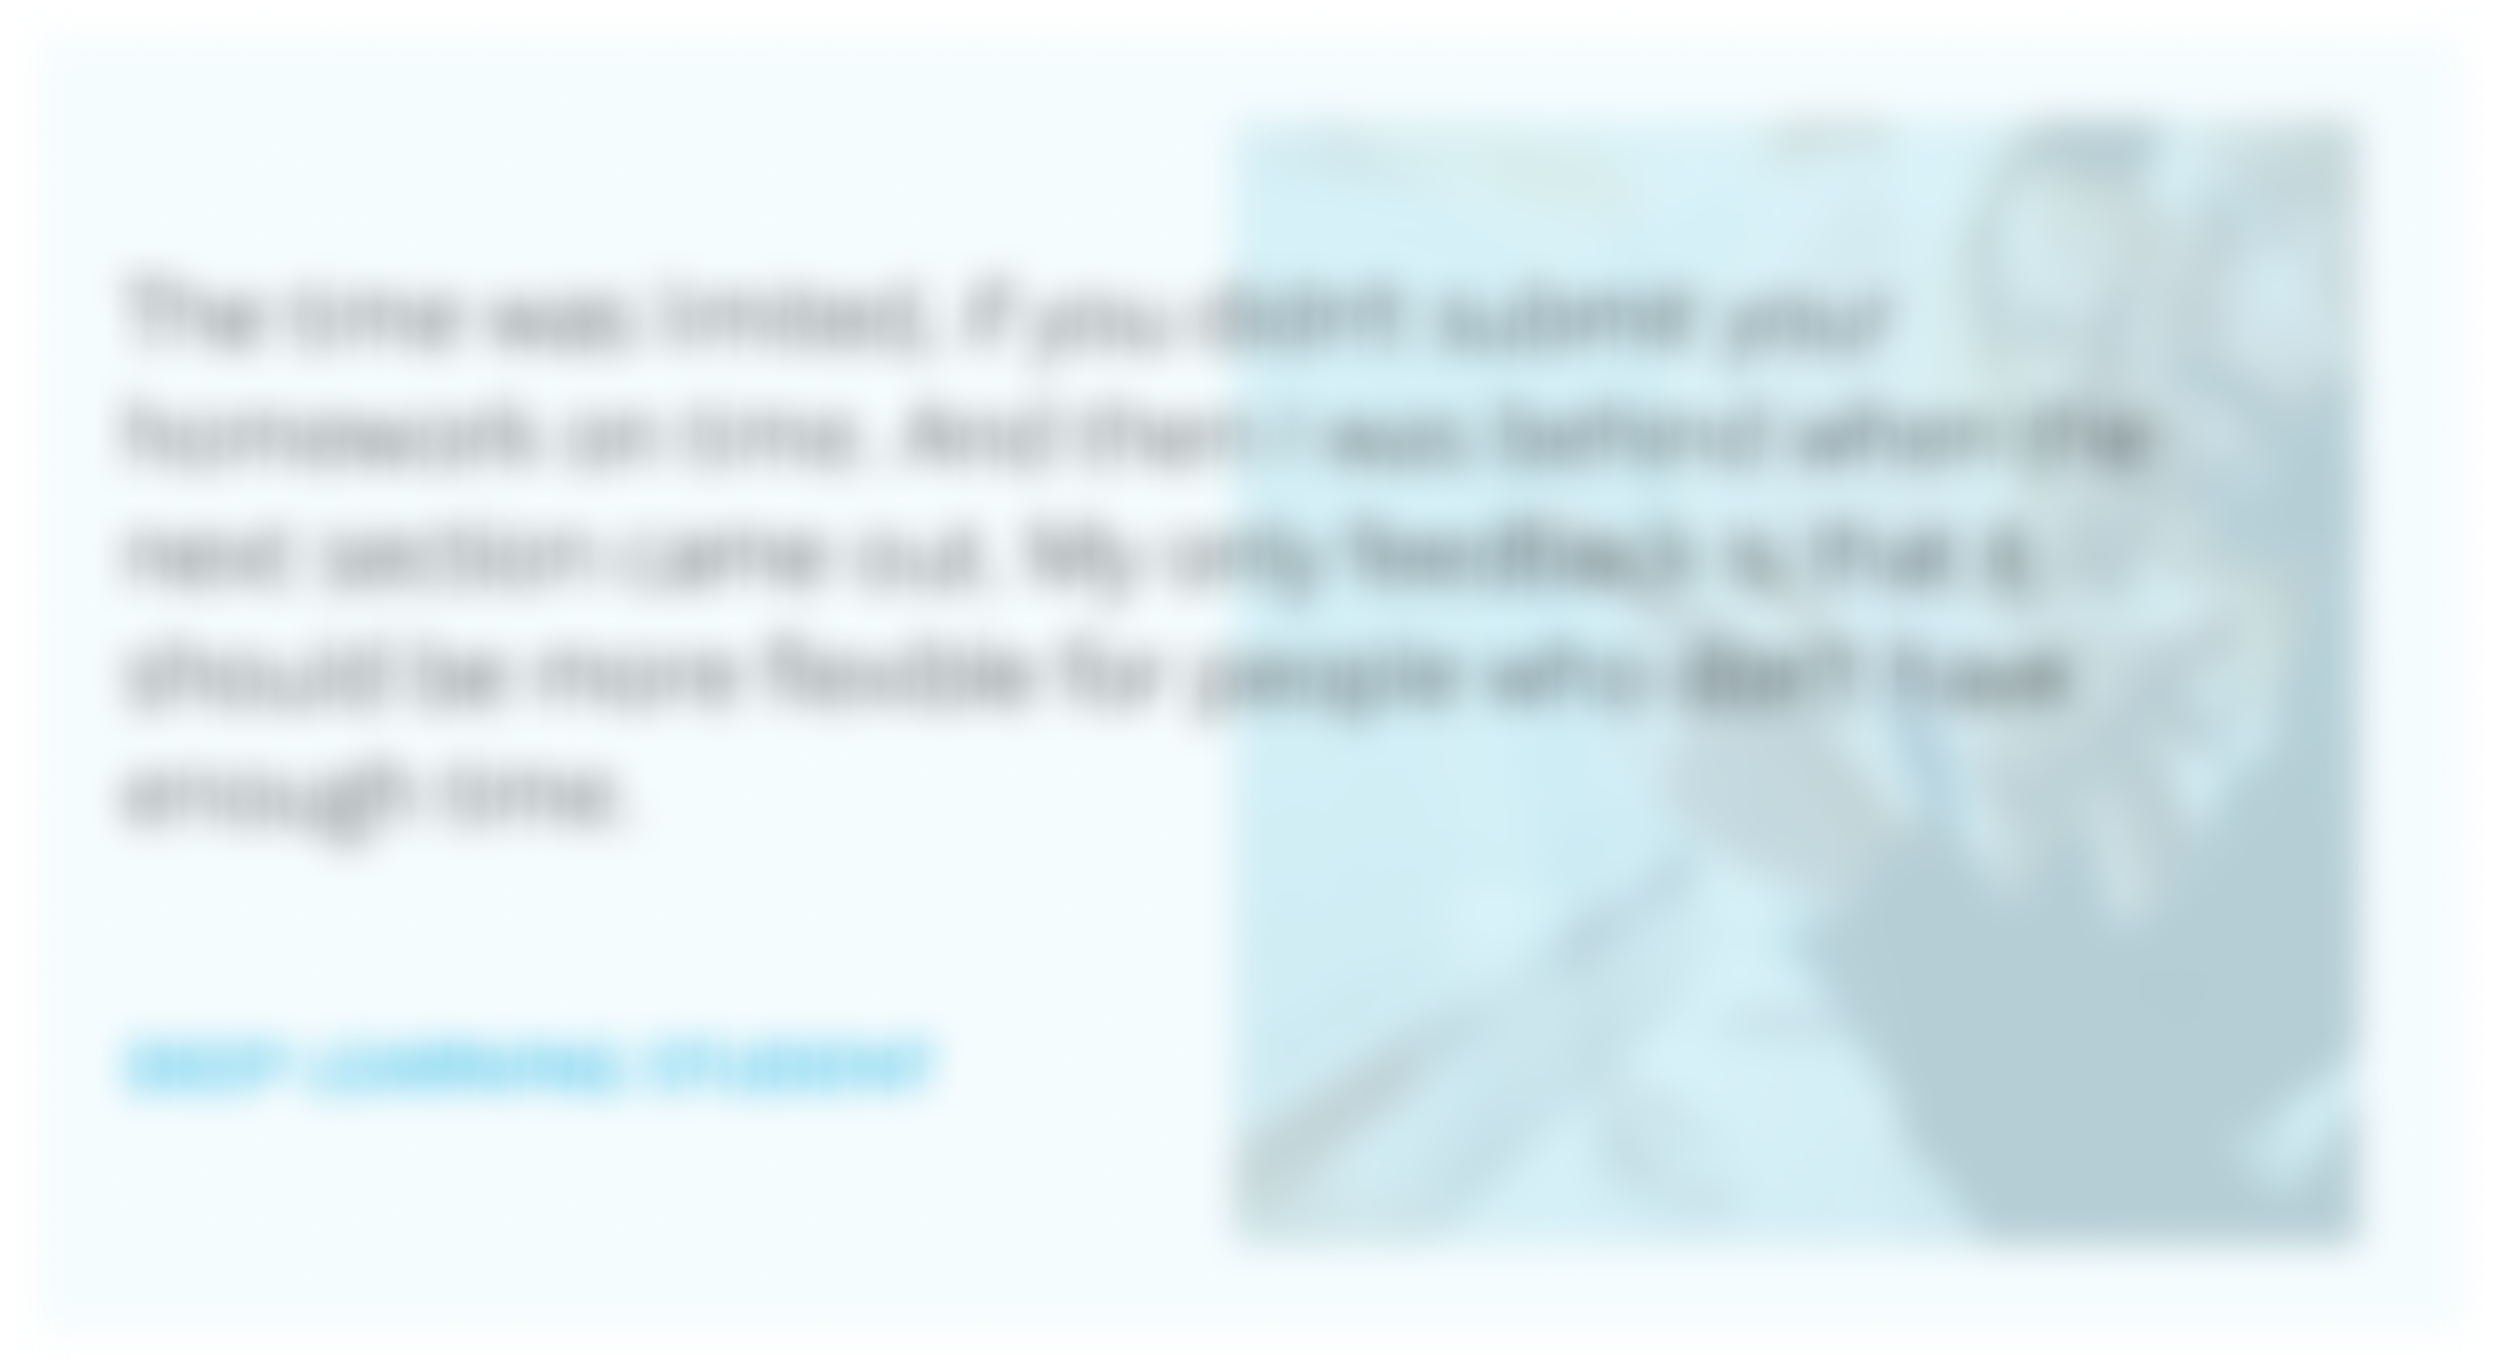 udacity quote.png